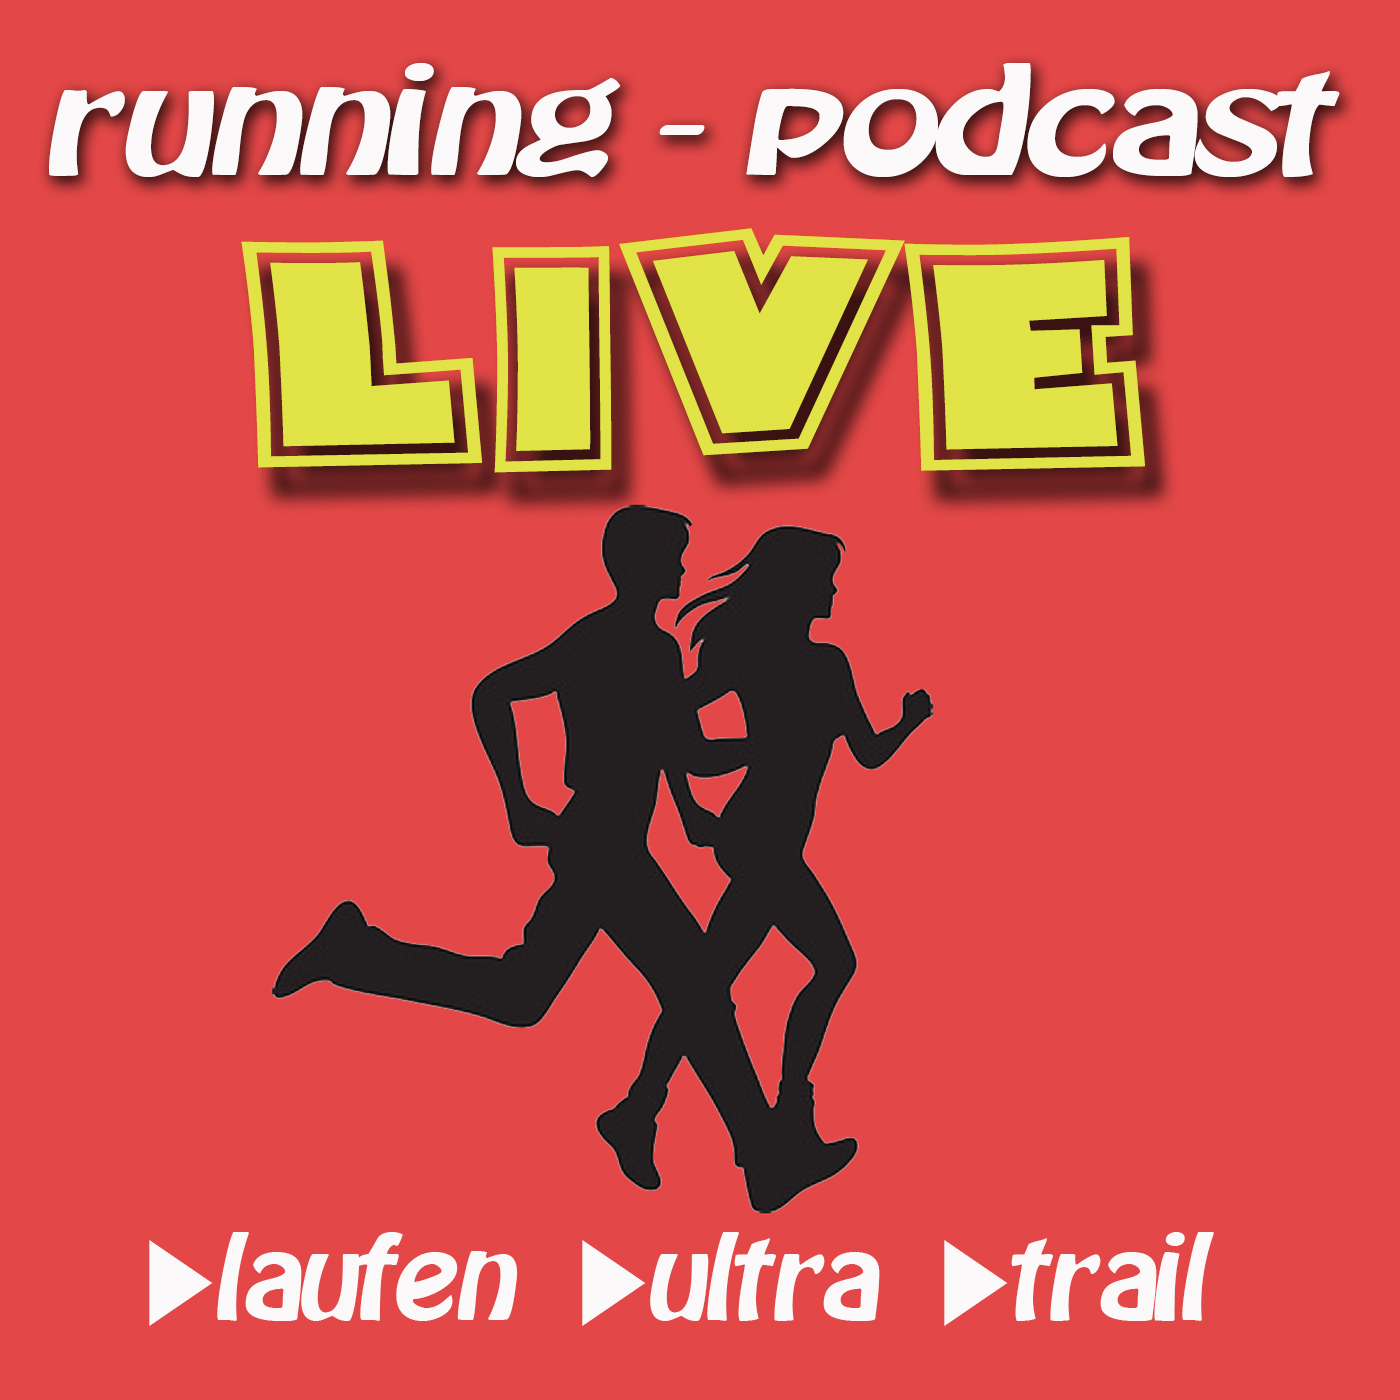 RP076 Running Talk mit Peter live – Running Podcast